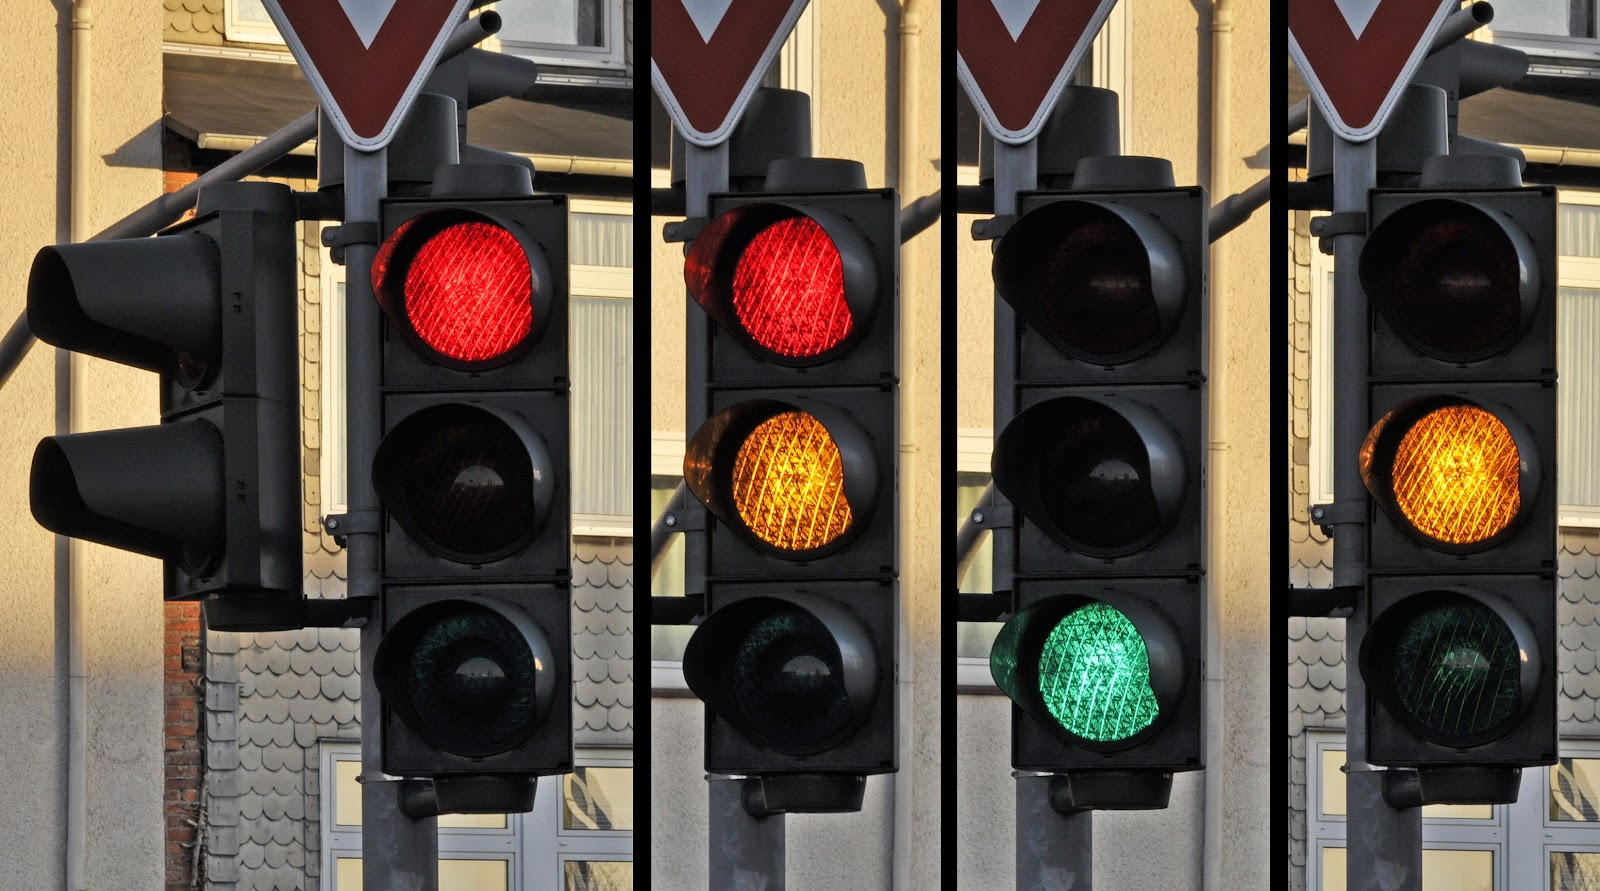 traffic-light-876050.jpg